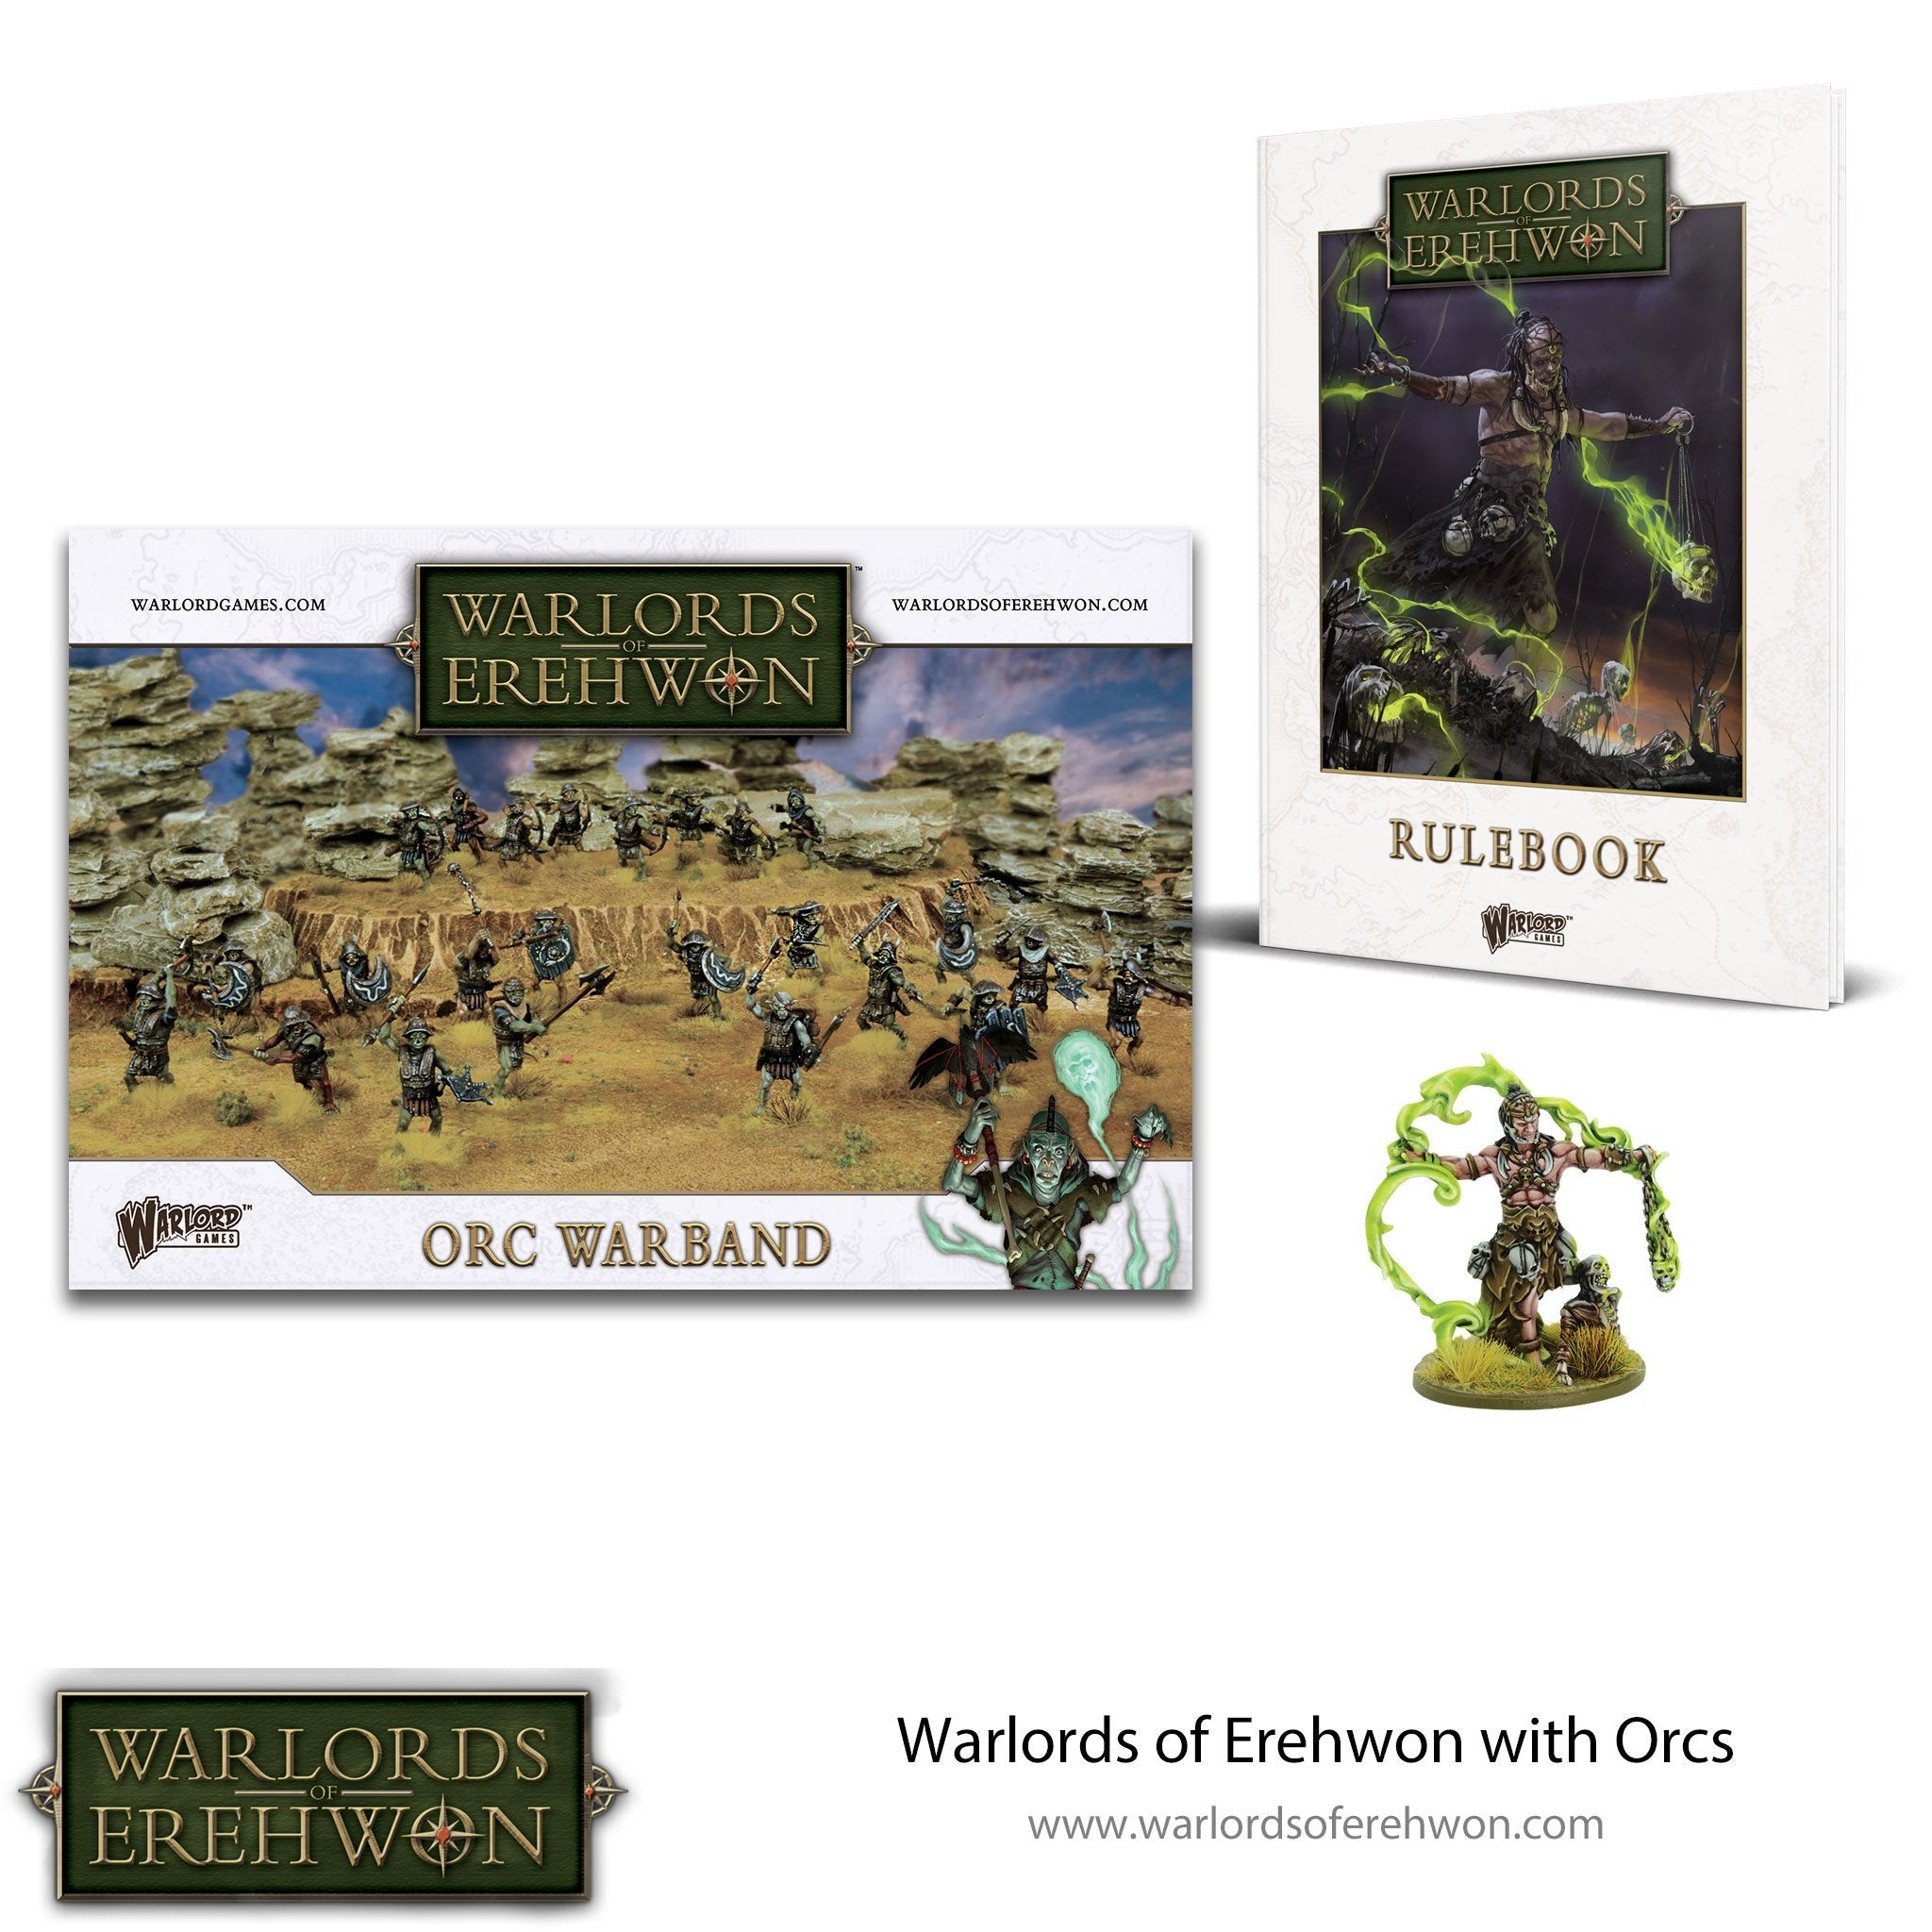 Warlords of Erehwon with Orcs